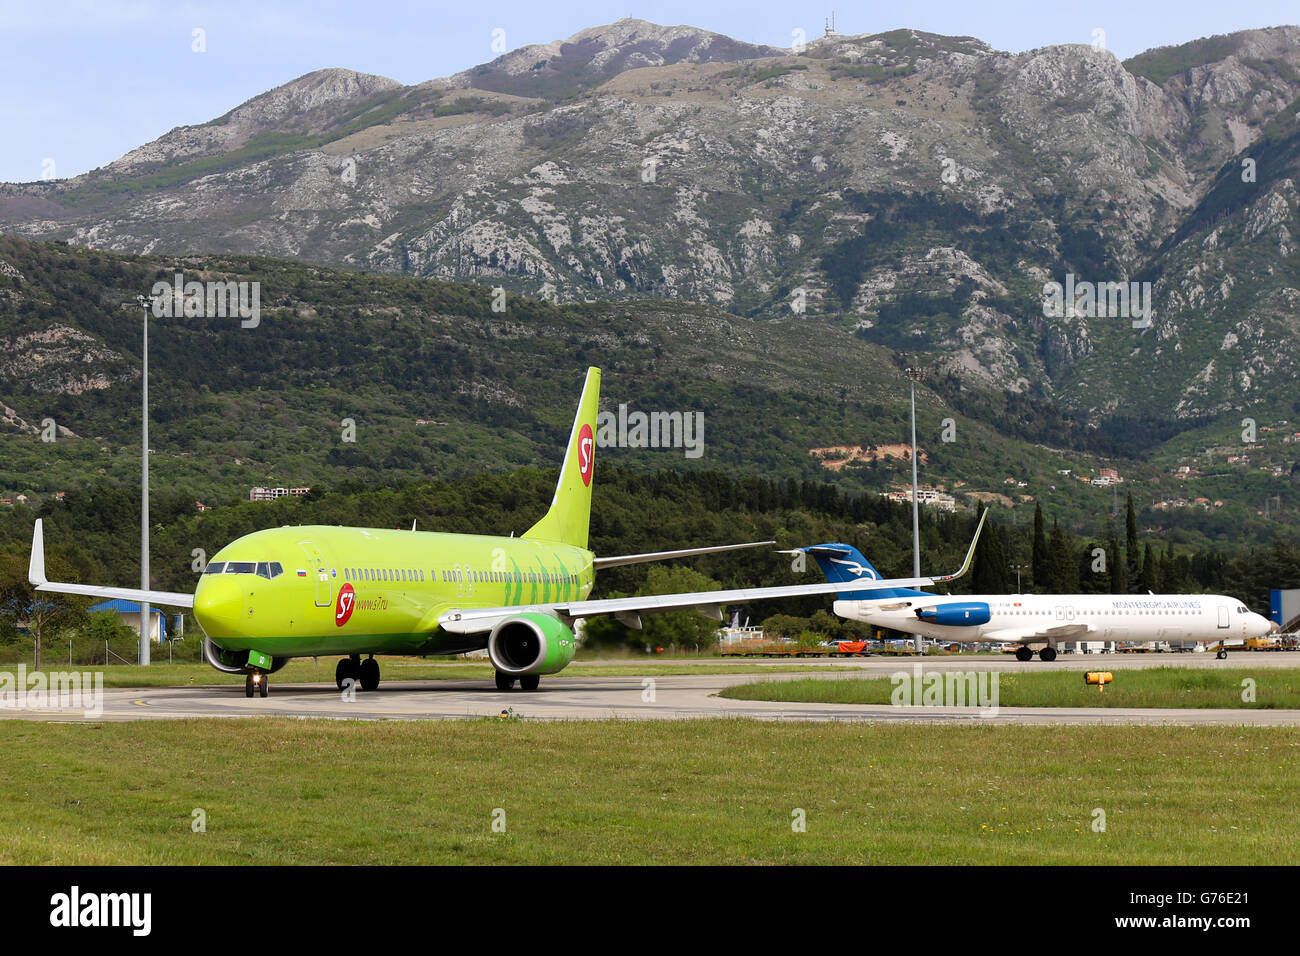 S7 Airlines Boeing 737-800 taxis to runway 14 at Tivat airport. - Stock Image